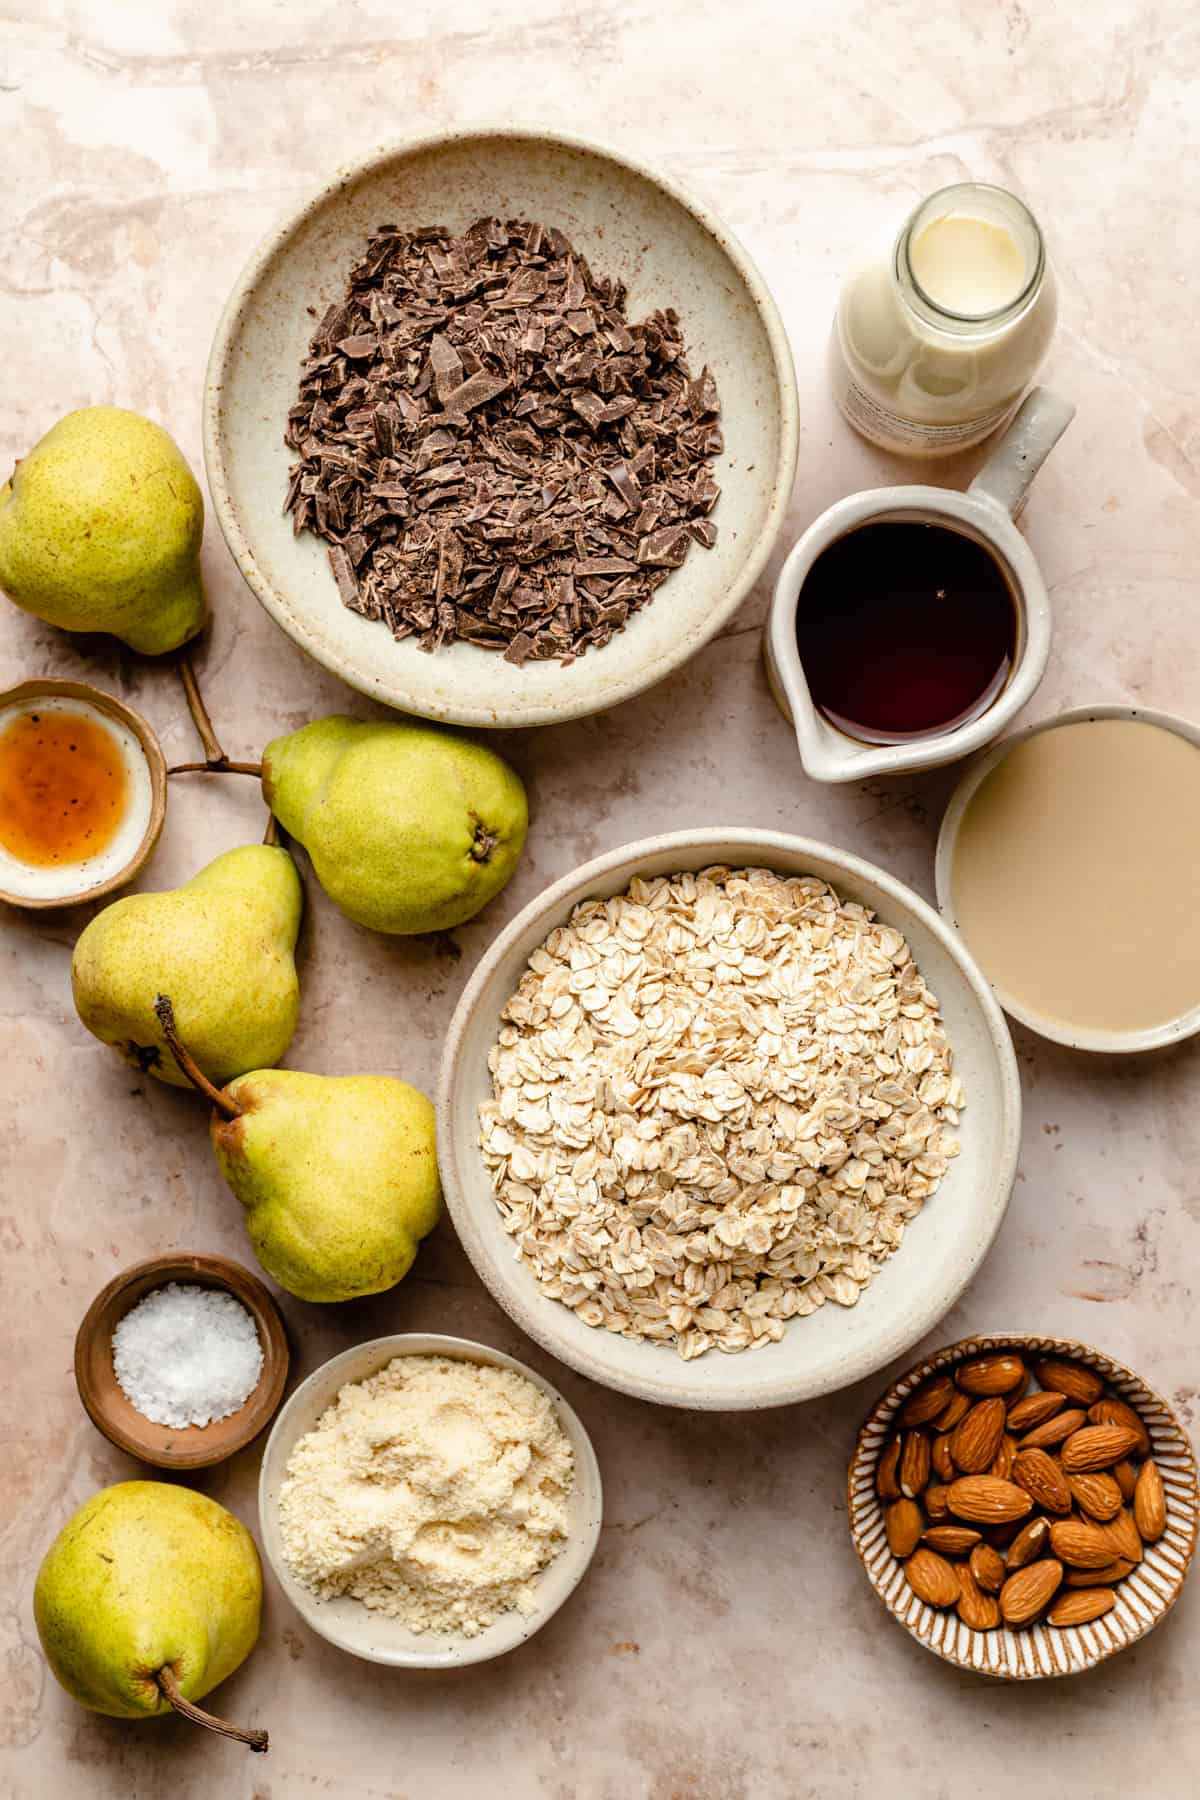 Ingredients in bowls: pears, chocolate, oats, tahini, maple syrup, almond flour, almonds, cream and vanilla extract.